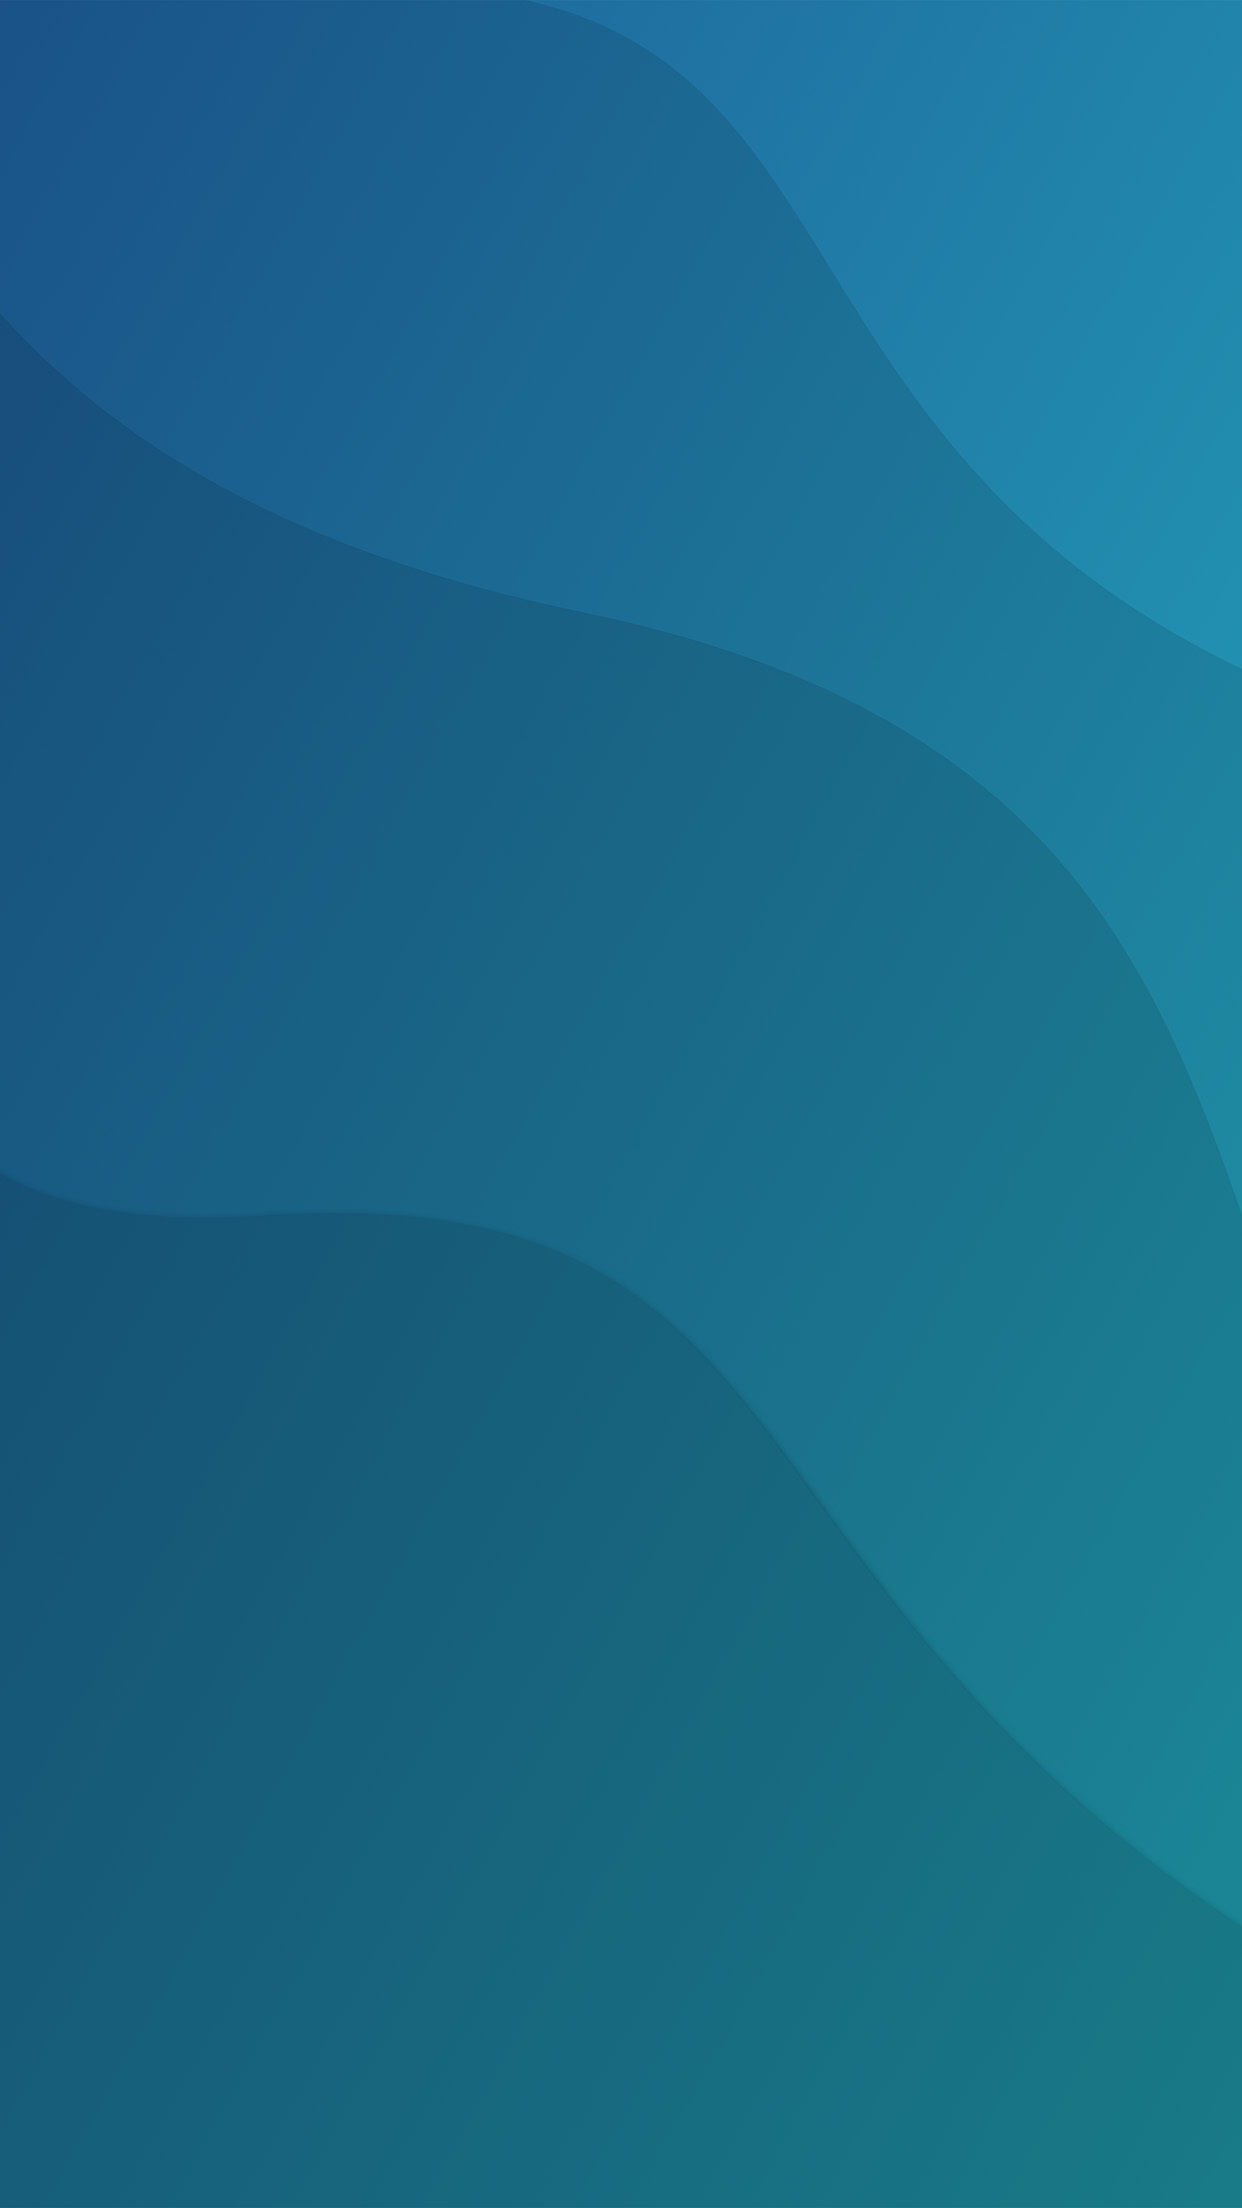 vy73-wave-color-blue-pattern-background-wallpaper